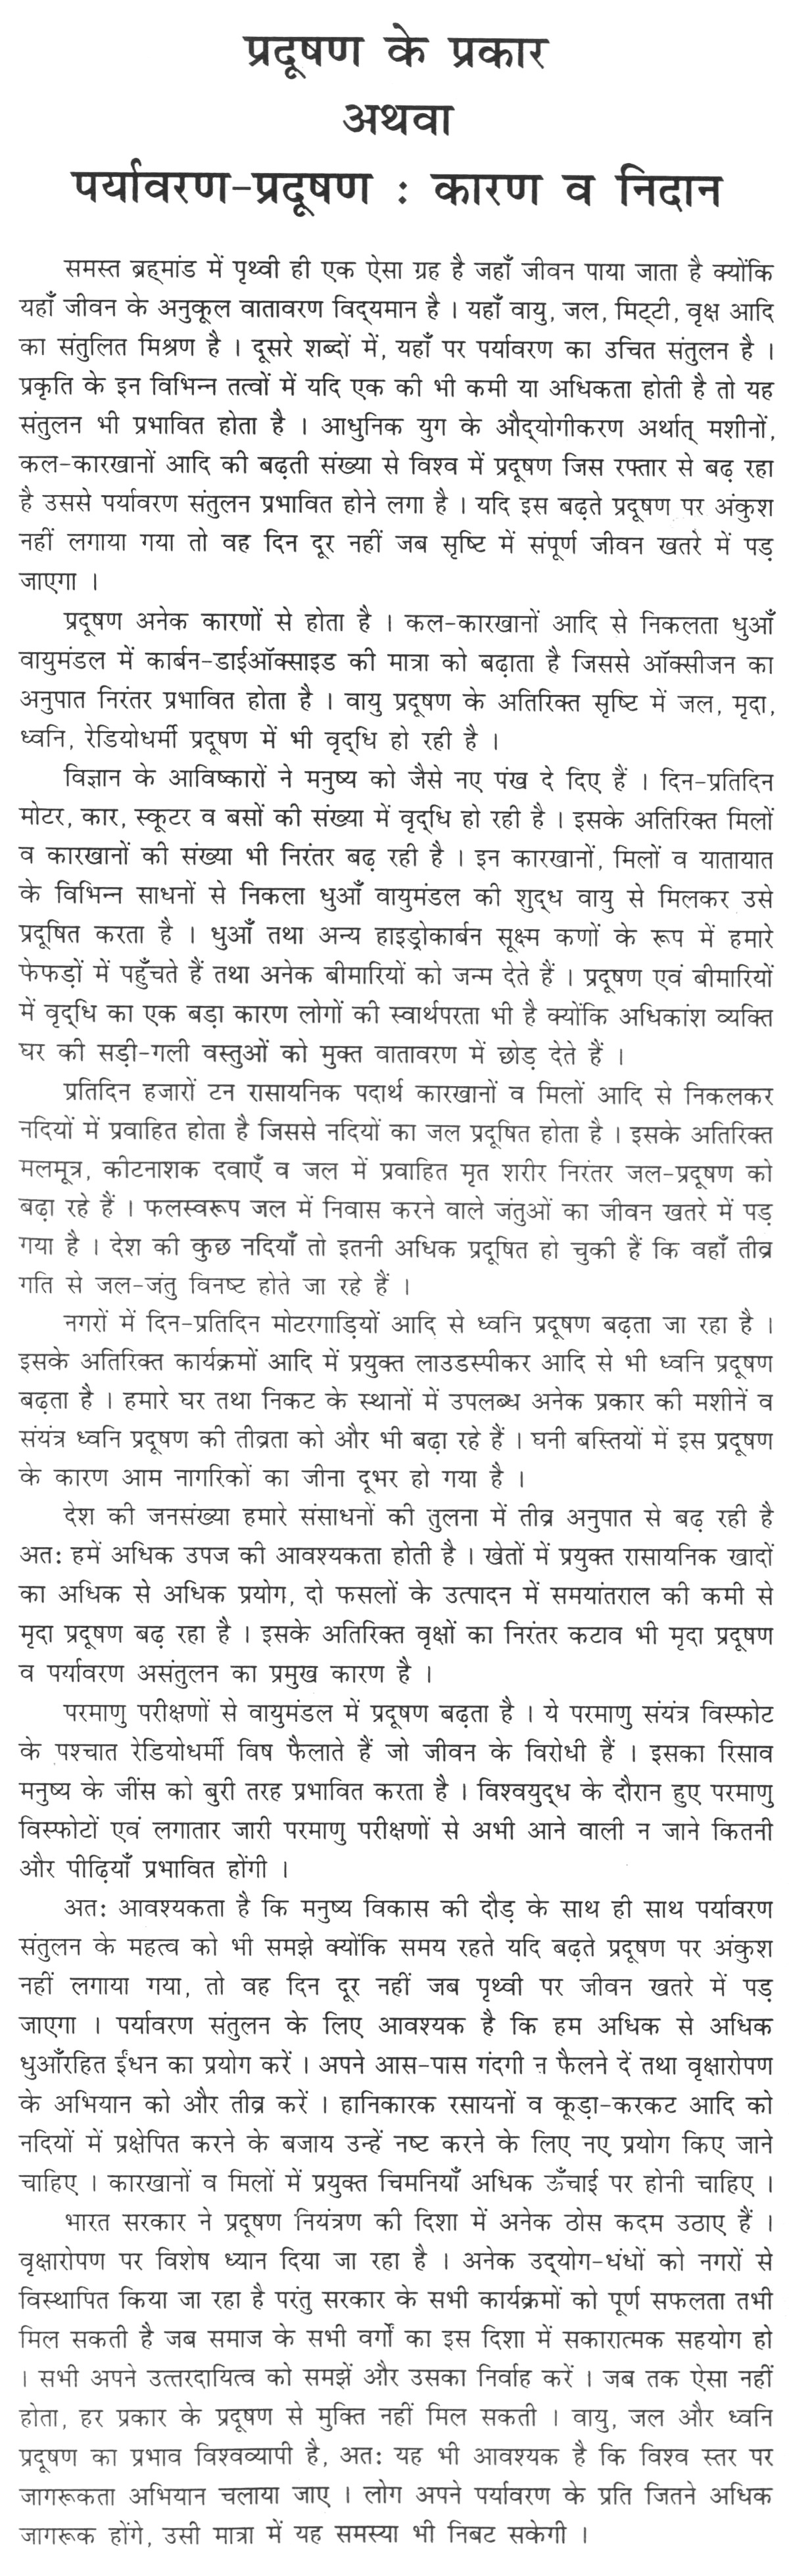 014 Good Habits Essay In Hindi Exceptional Healthy Eating Reading Is A Habit Full